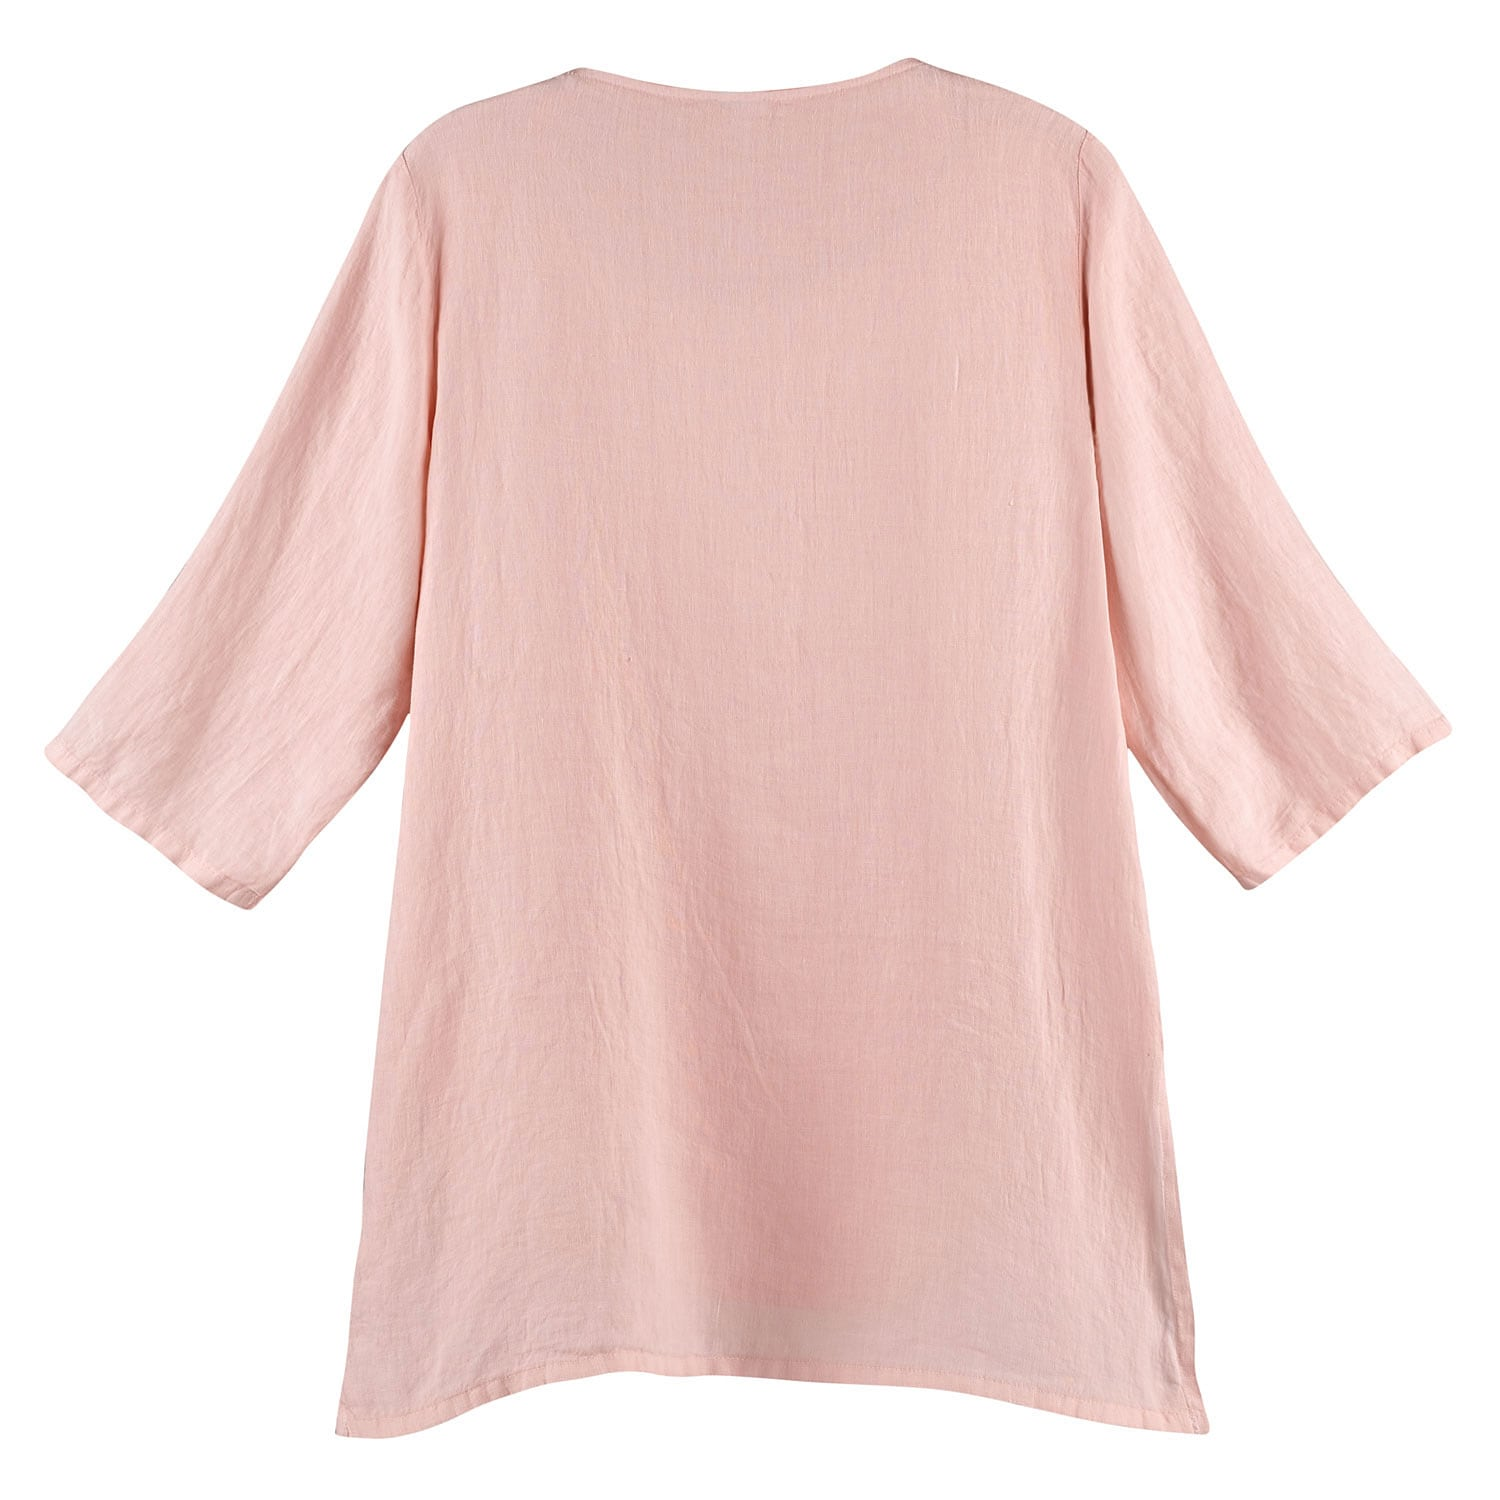 thumbnail 12 - Women's Tunic Top - Long Layered Linen Blouse with 3/4 Sleeves